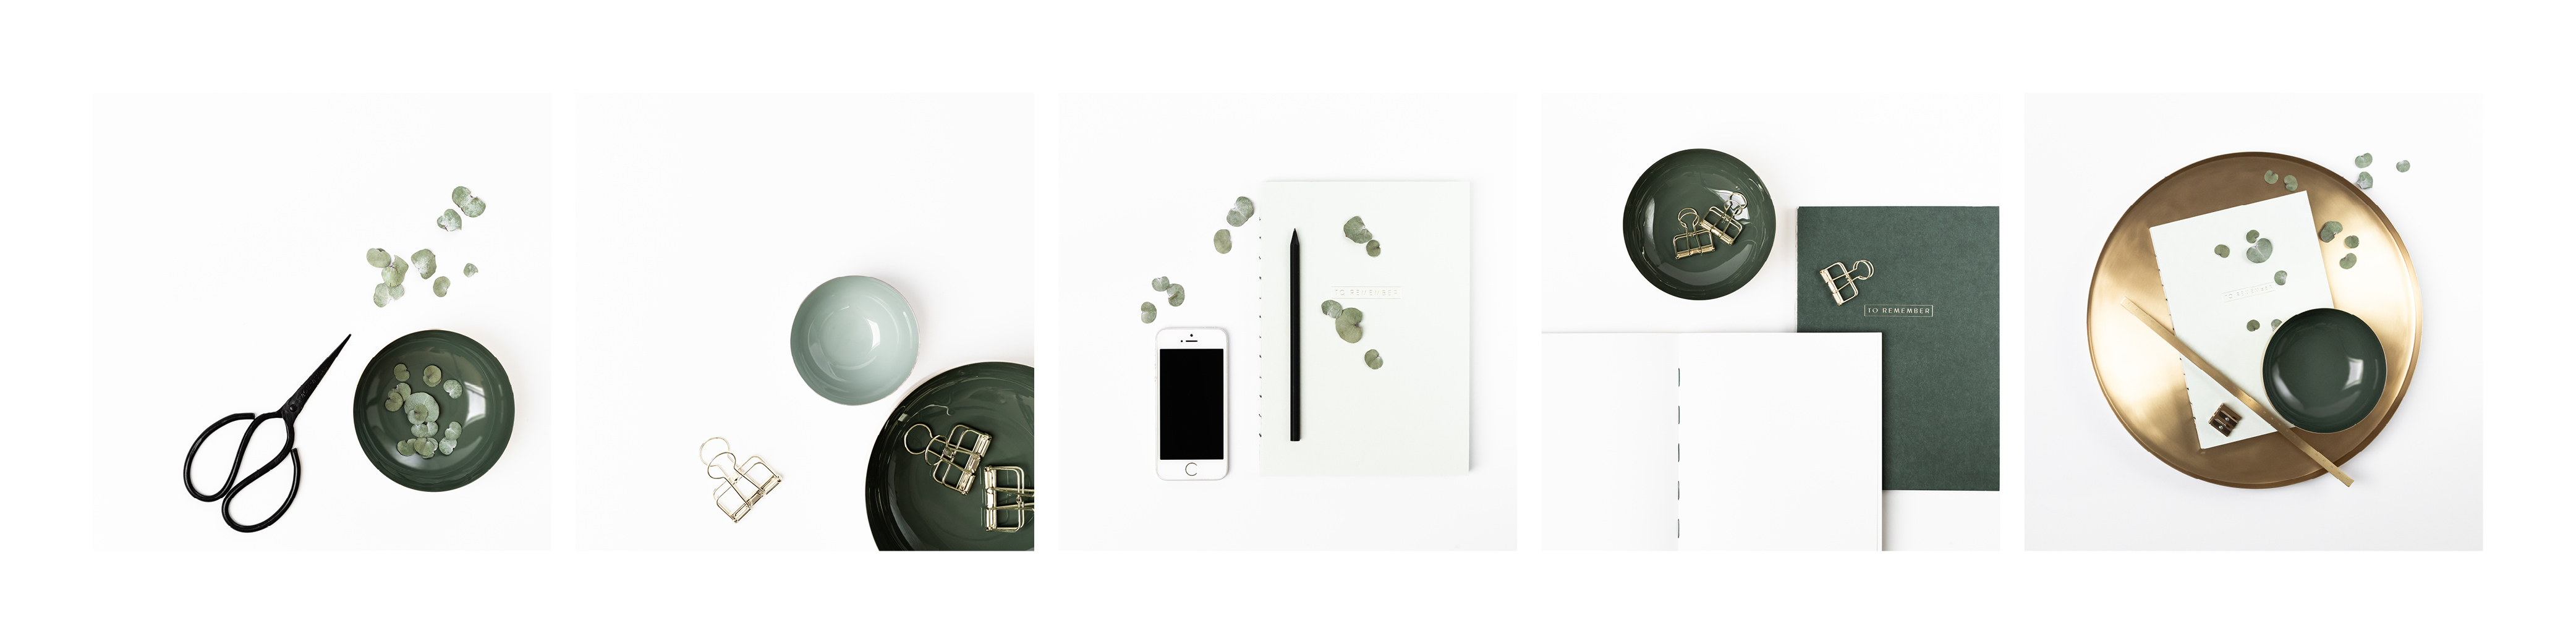 Overview images for a moody and elegant styled stock bundle featuring golden and green notebooks and bowls